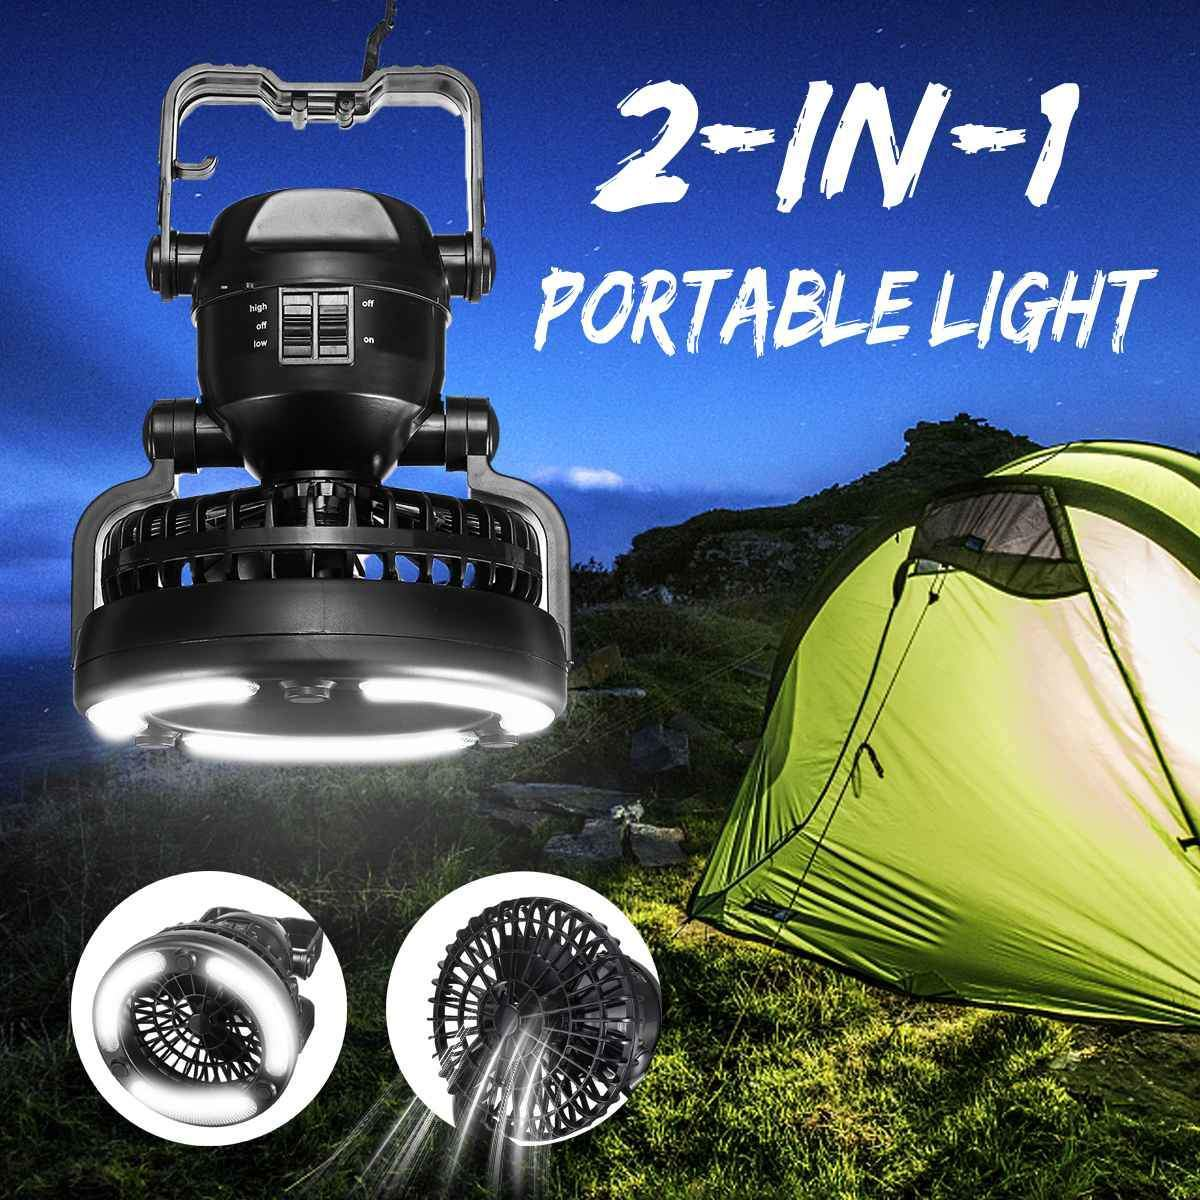 2 IN 1 Camping Fan And Led Light